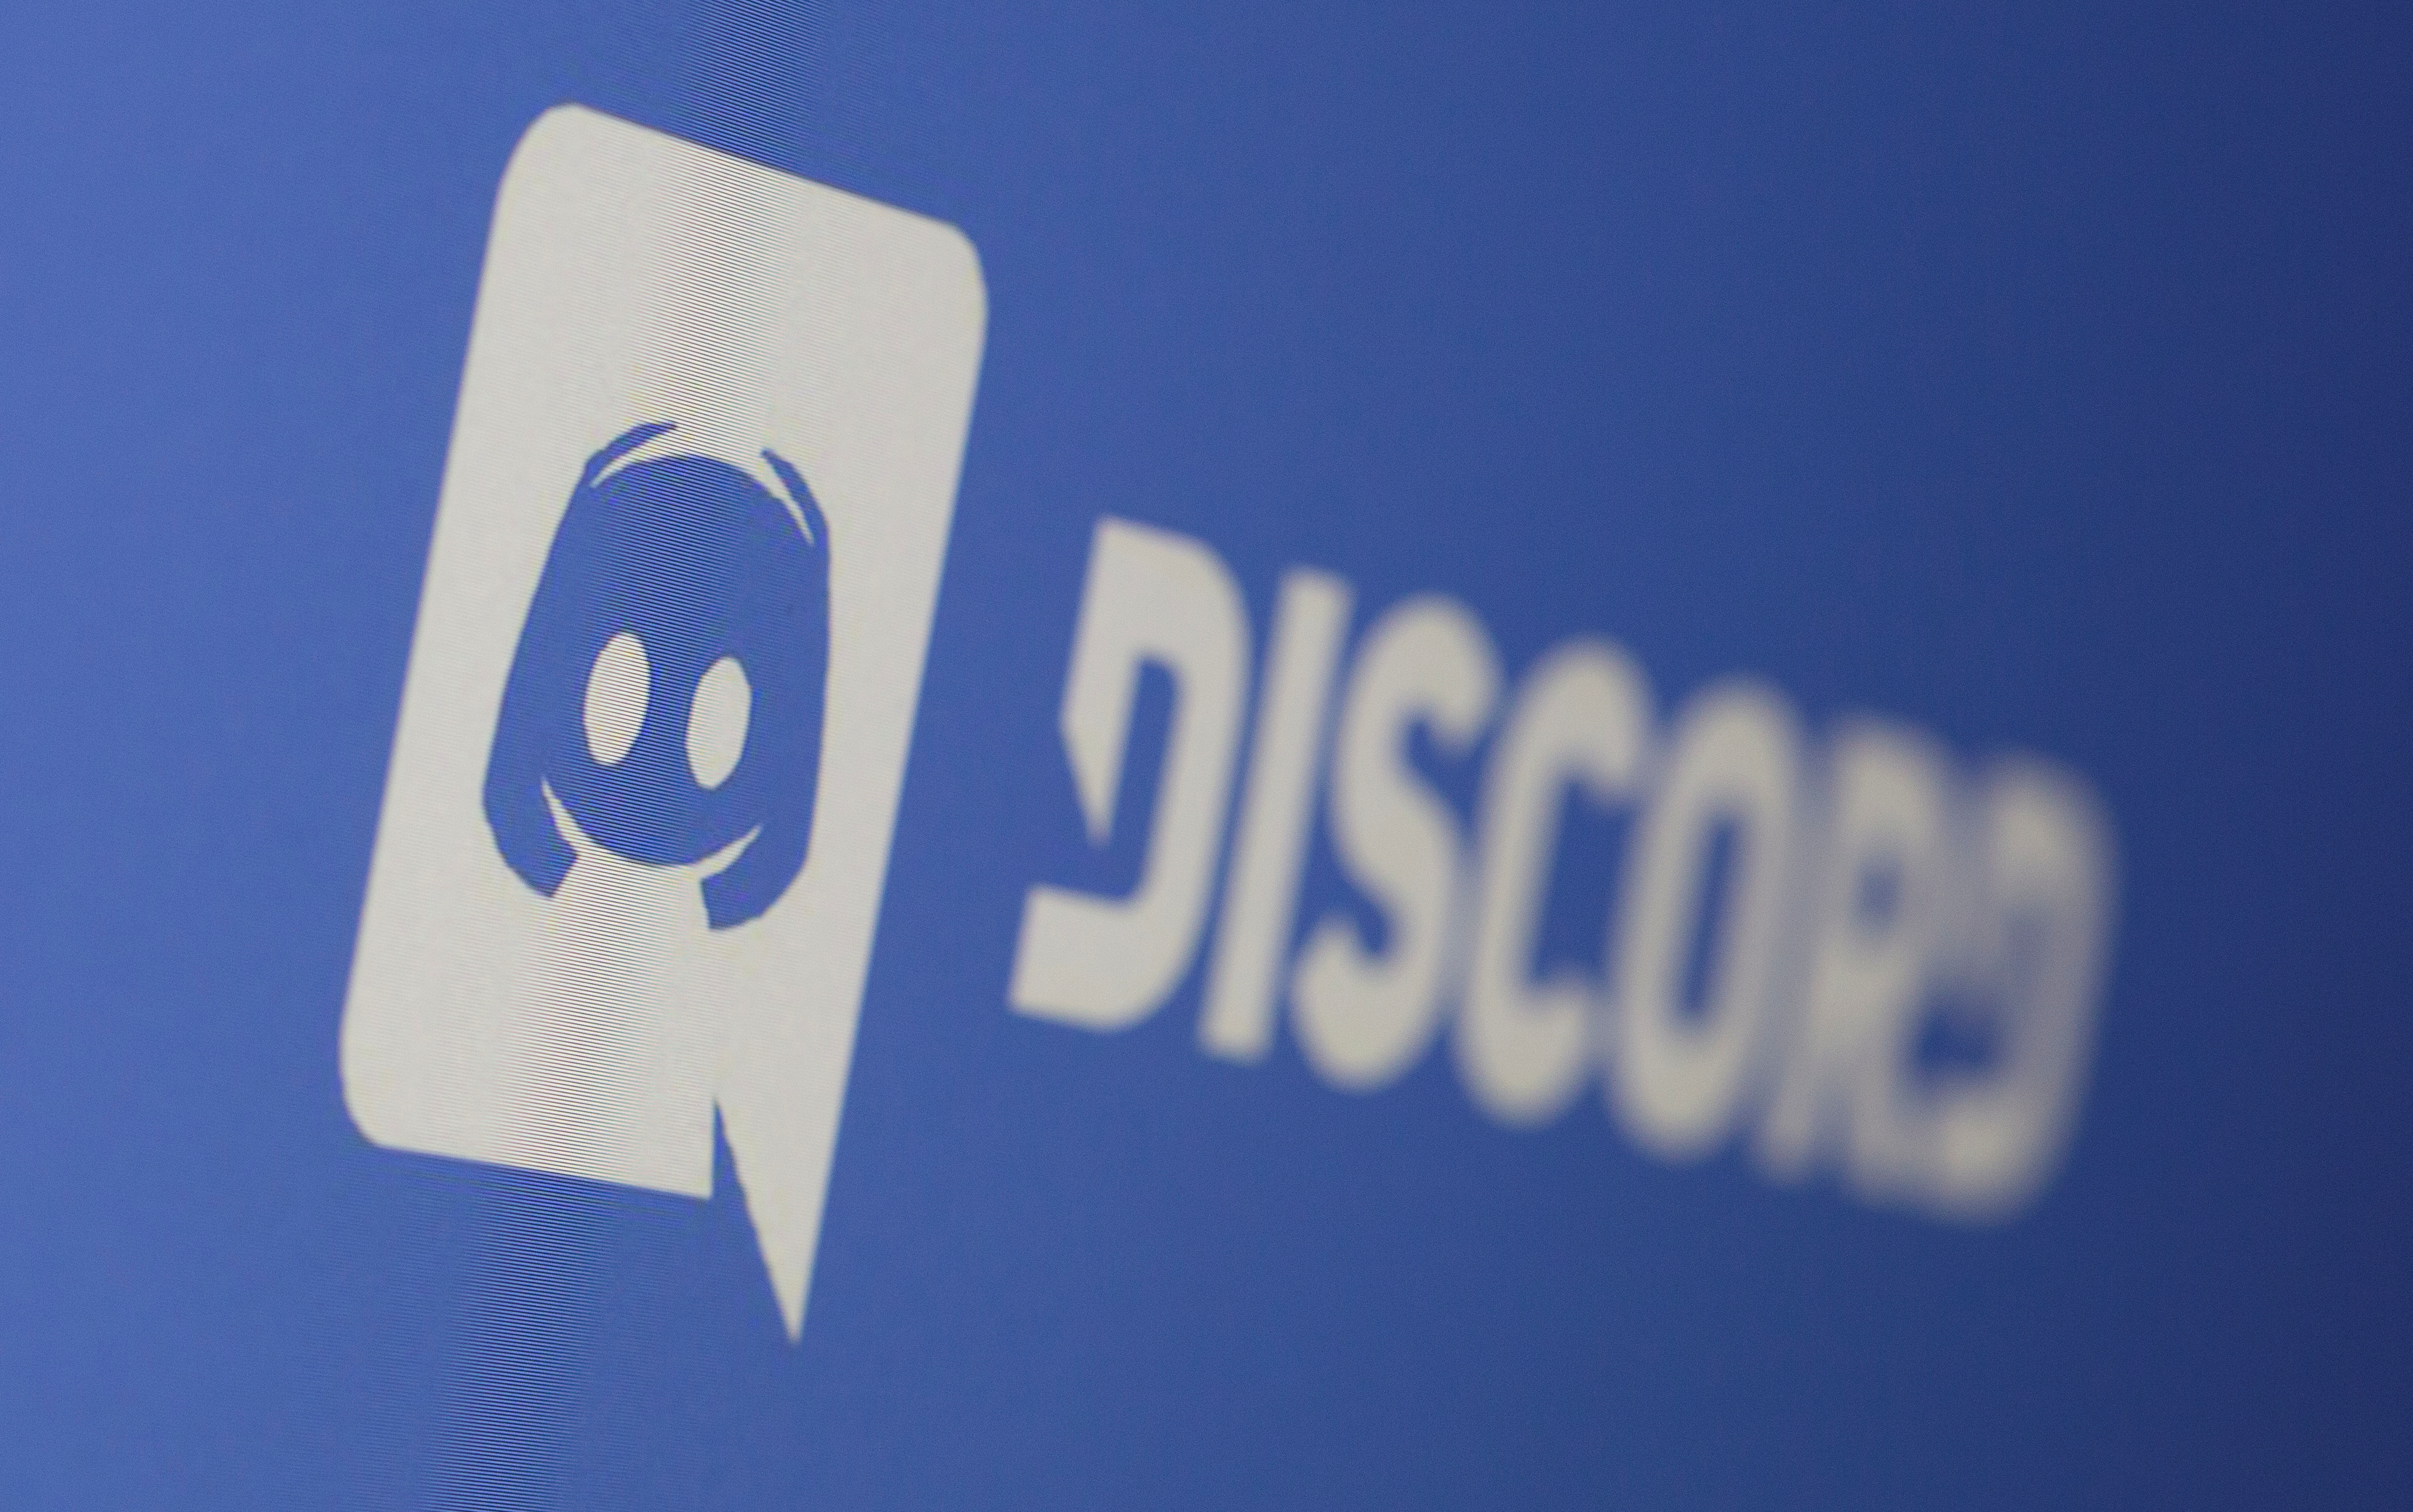 Discord app logo is seen displayed in this illustration taken March 29, 2021. REUTERS/Dado Ruvic/Illustration